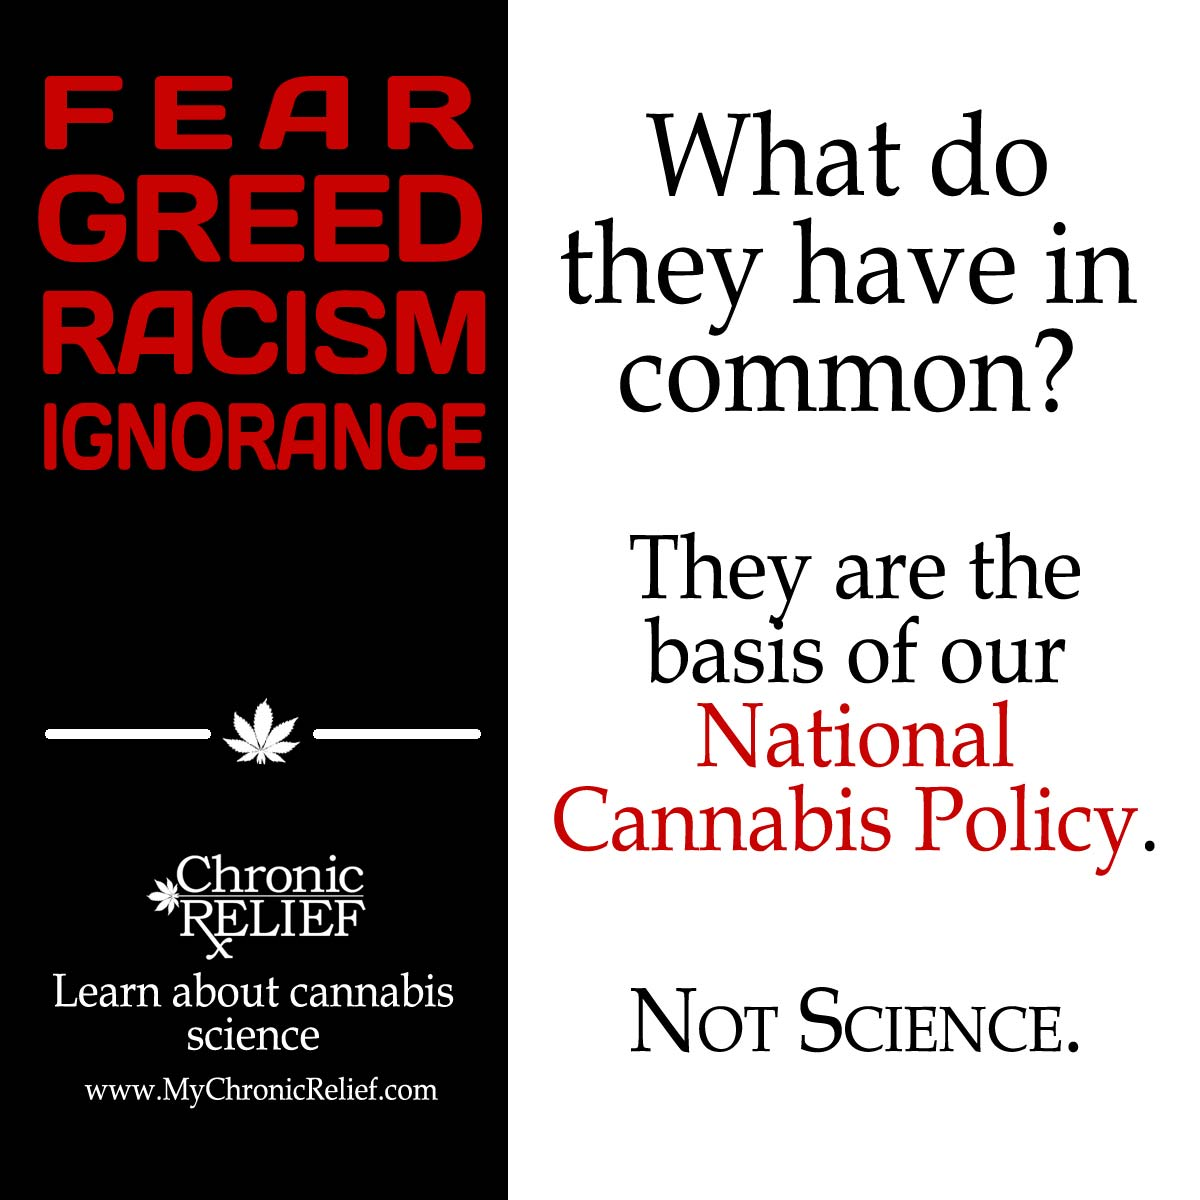 ignorance greed and the american media essay Avoidance and rejection really pump up the laughs for historical ignorance, political stupidity, and greed and, in the eyes of most of the world, those three have become the chief traits of the american people -- historical ignorance, political stupidity, and greed.